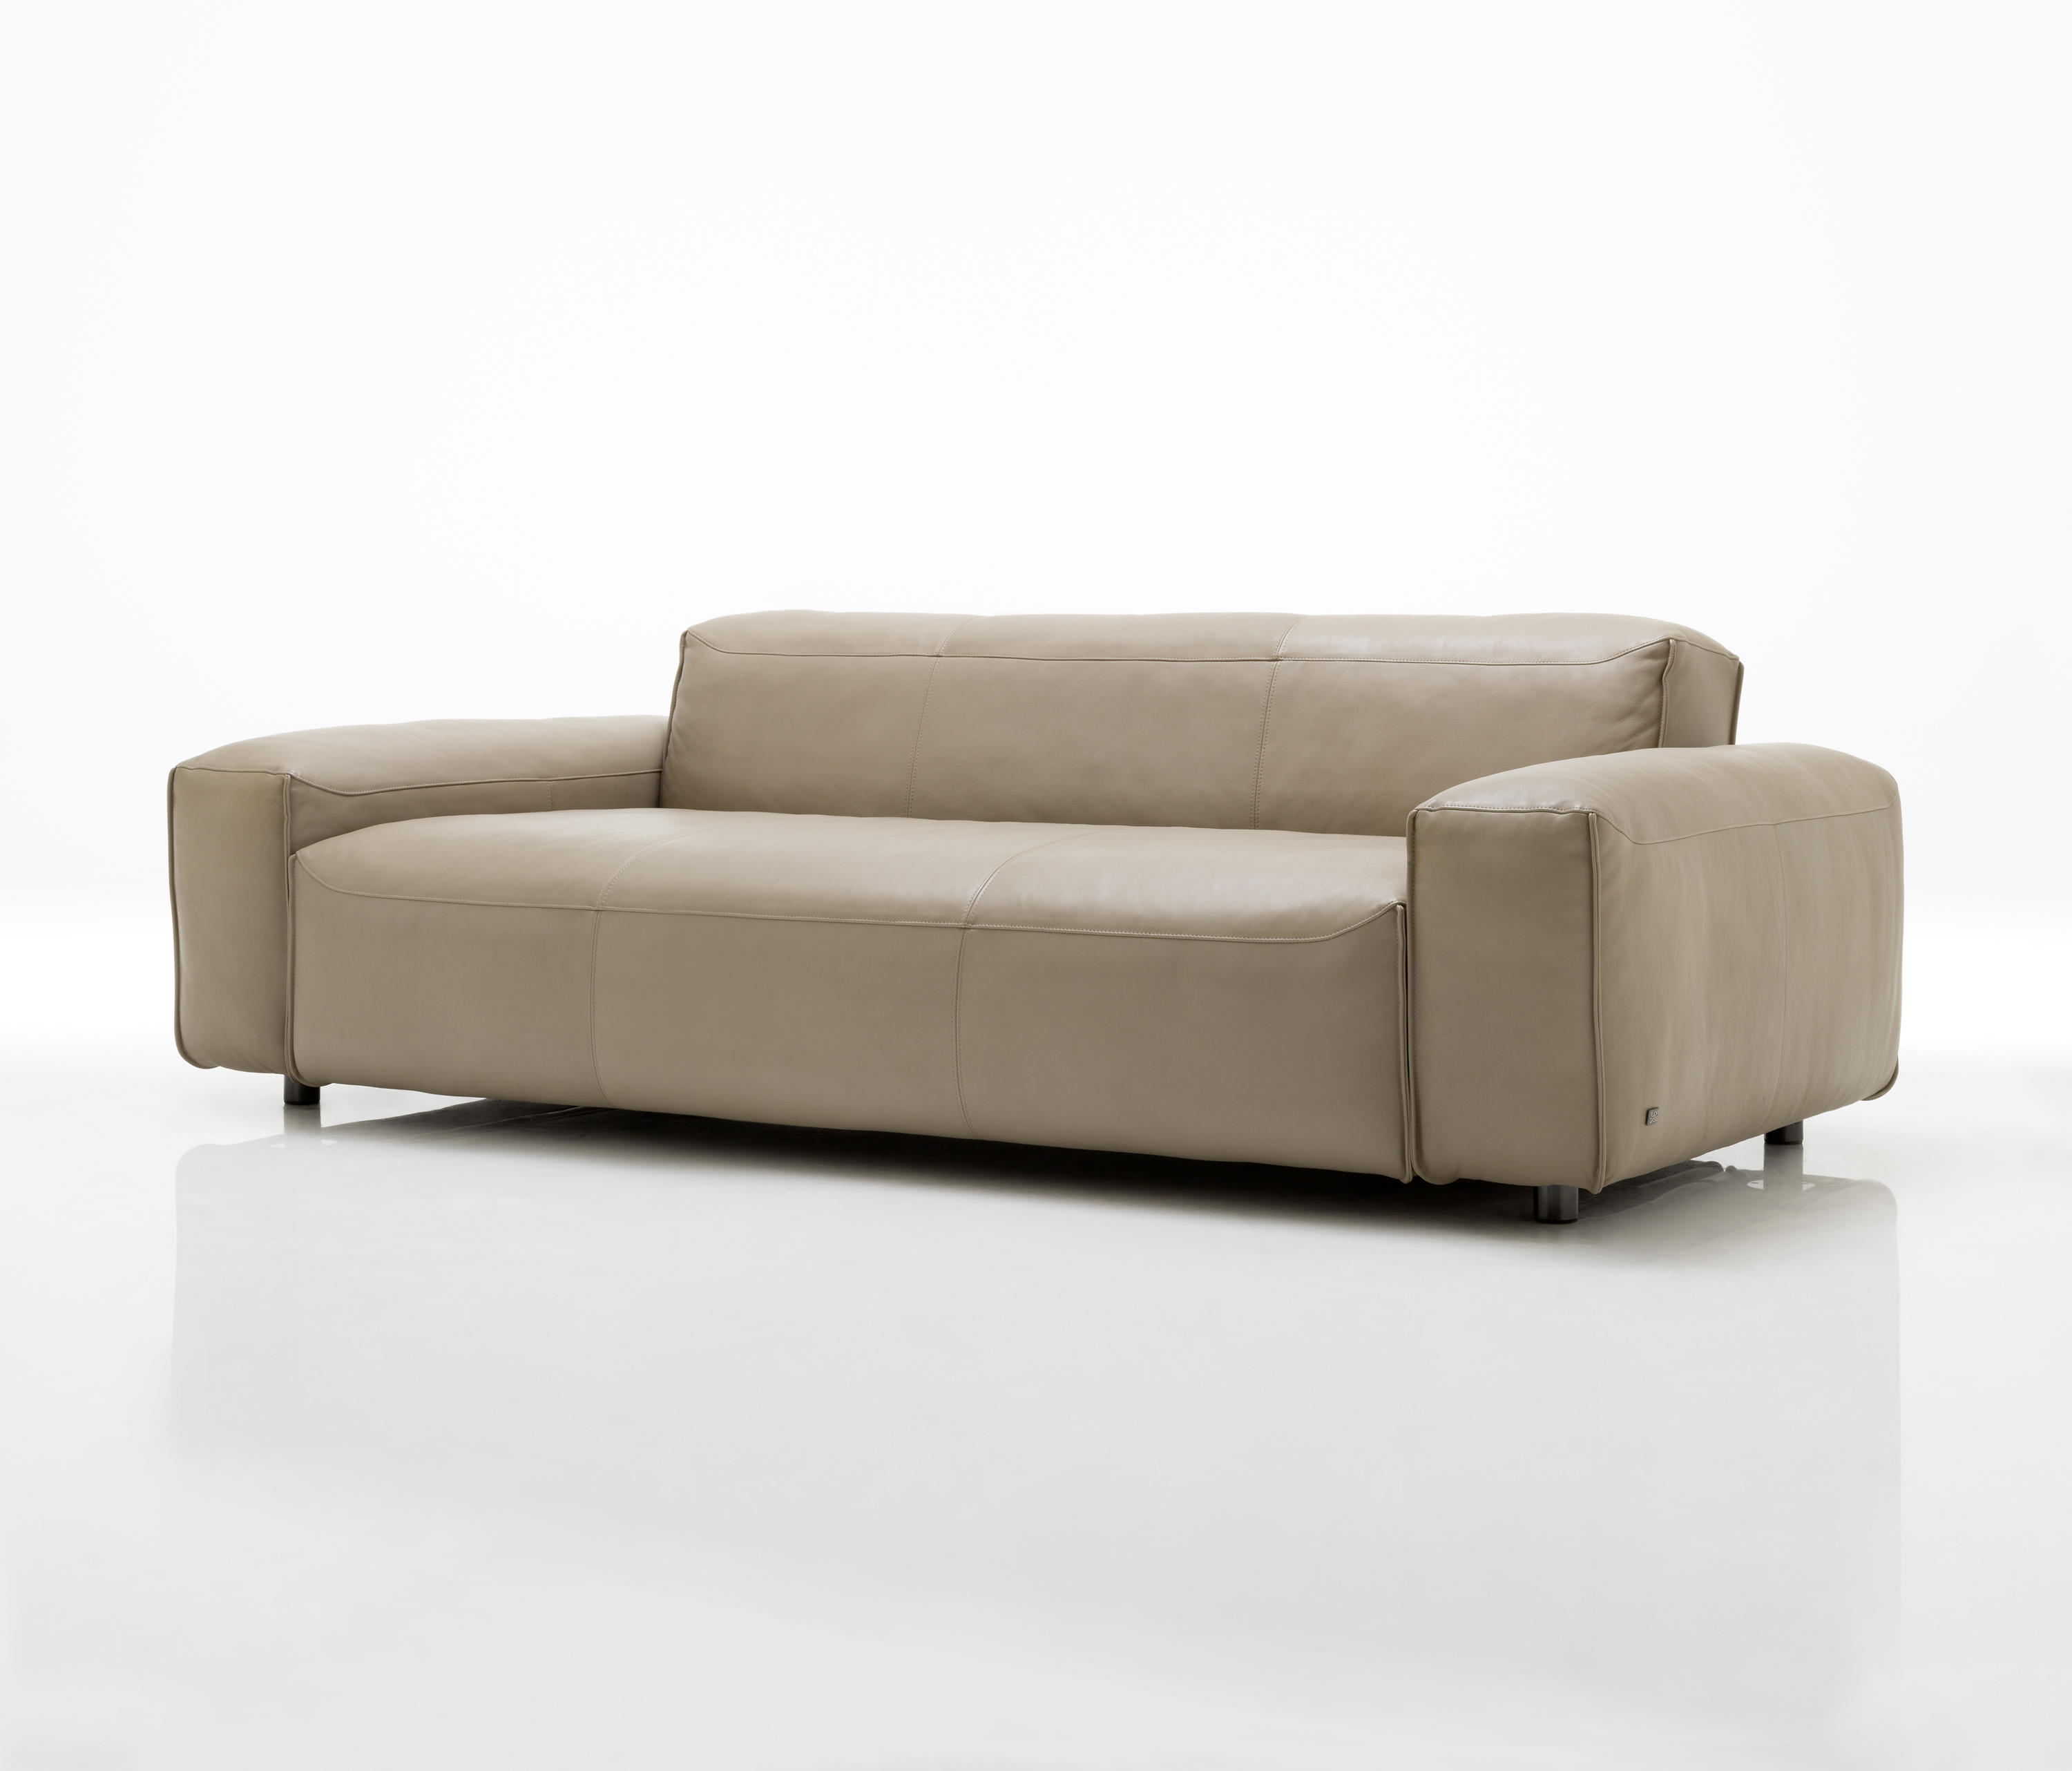 rolf benz mio loungesofas von rolf benz architonic